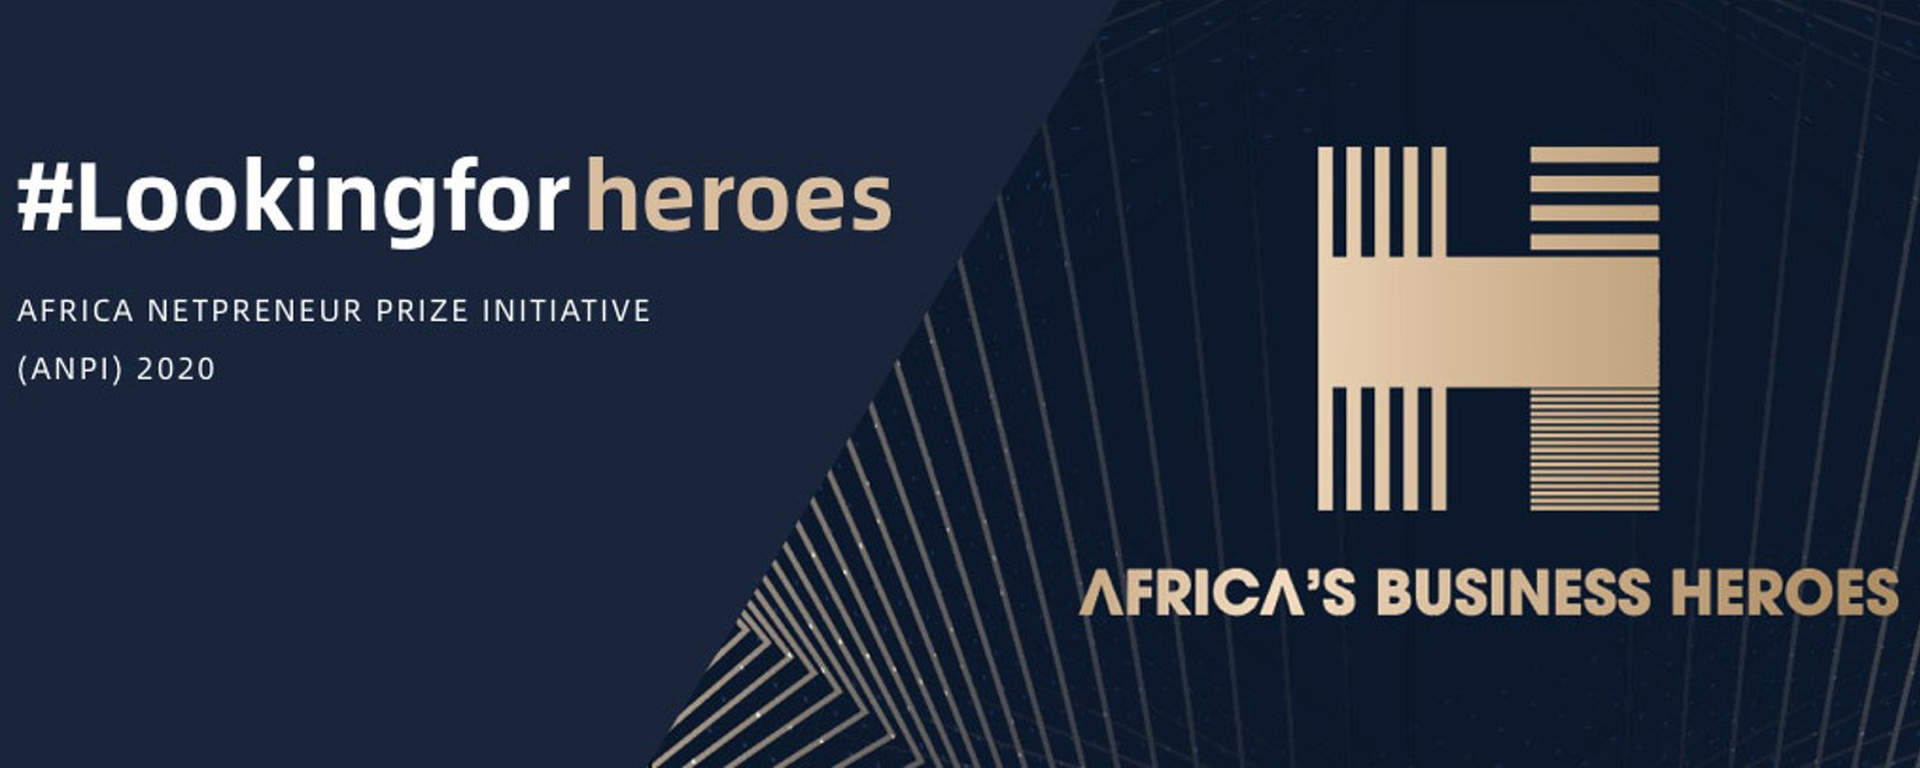 Africa's Business Heroes - Africa Netpreneur Prize Initiative Movemeback African initiative cover image